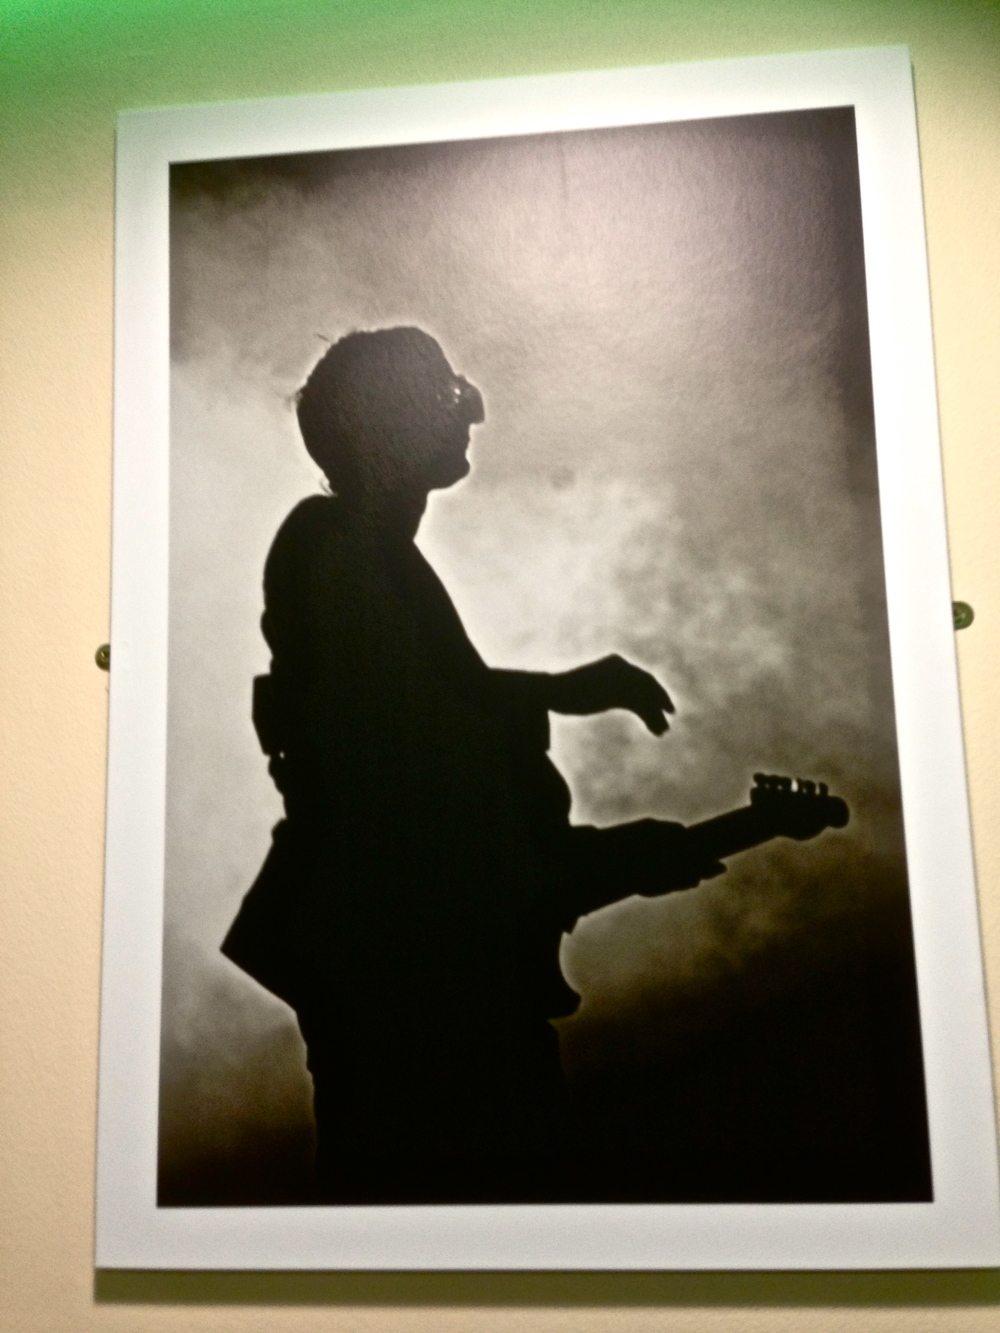 A random Matt Bellamy photograph hanging in a chipper:)